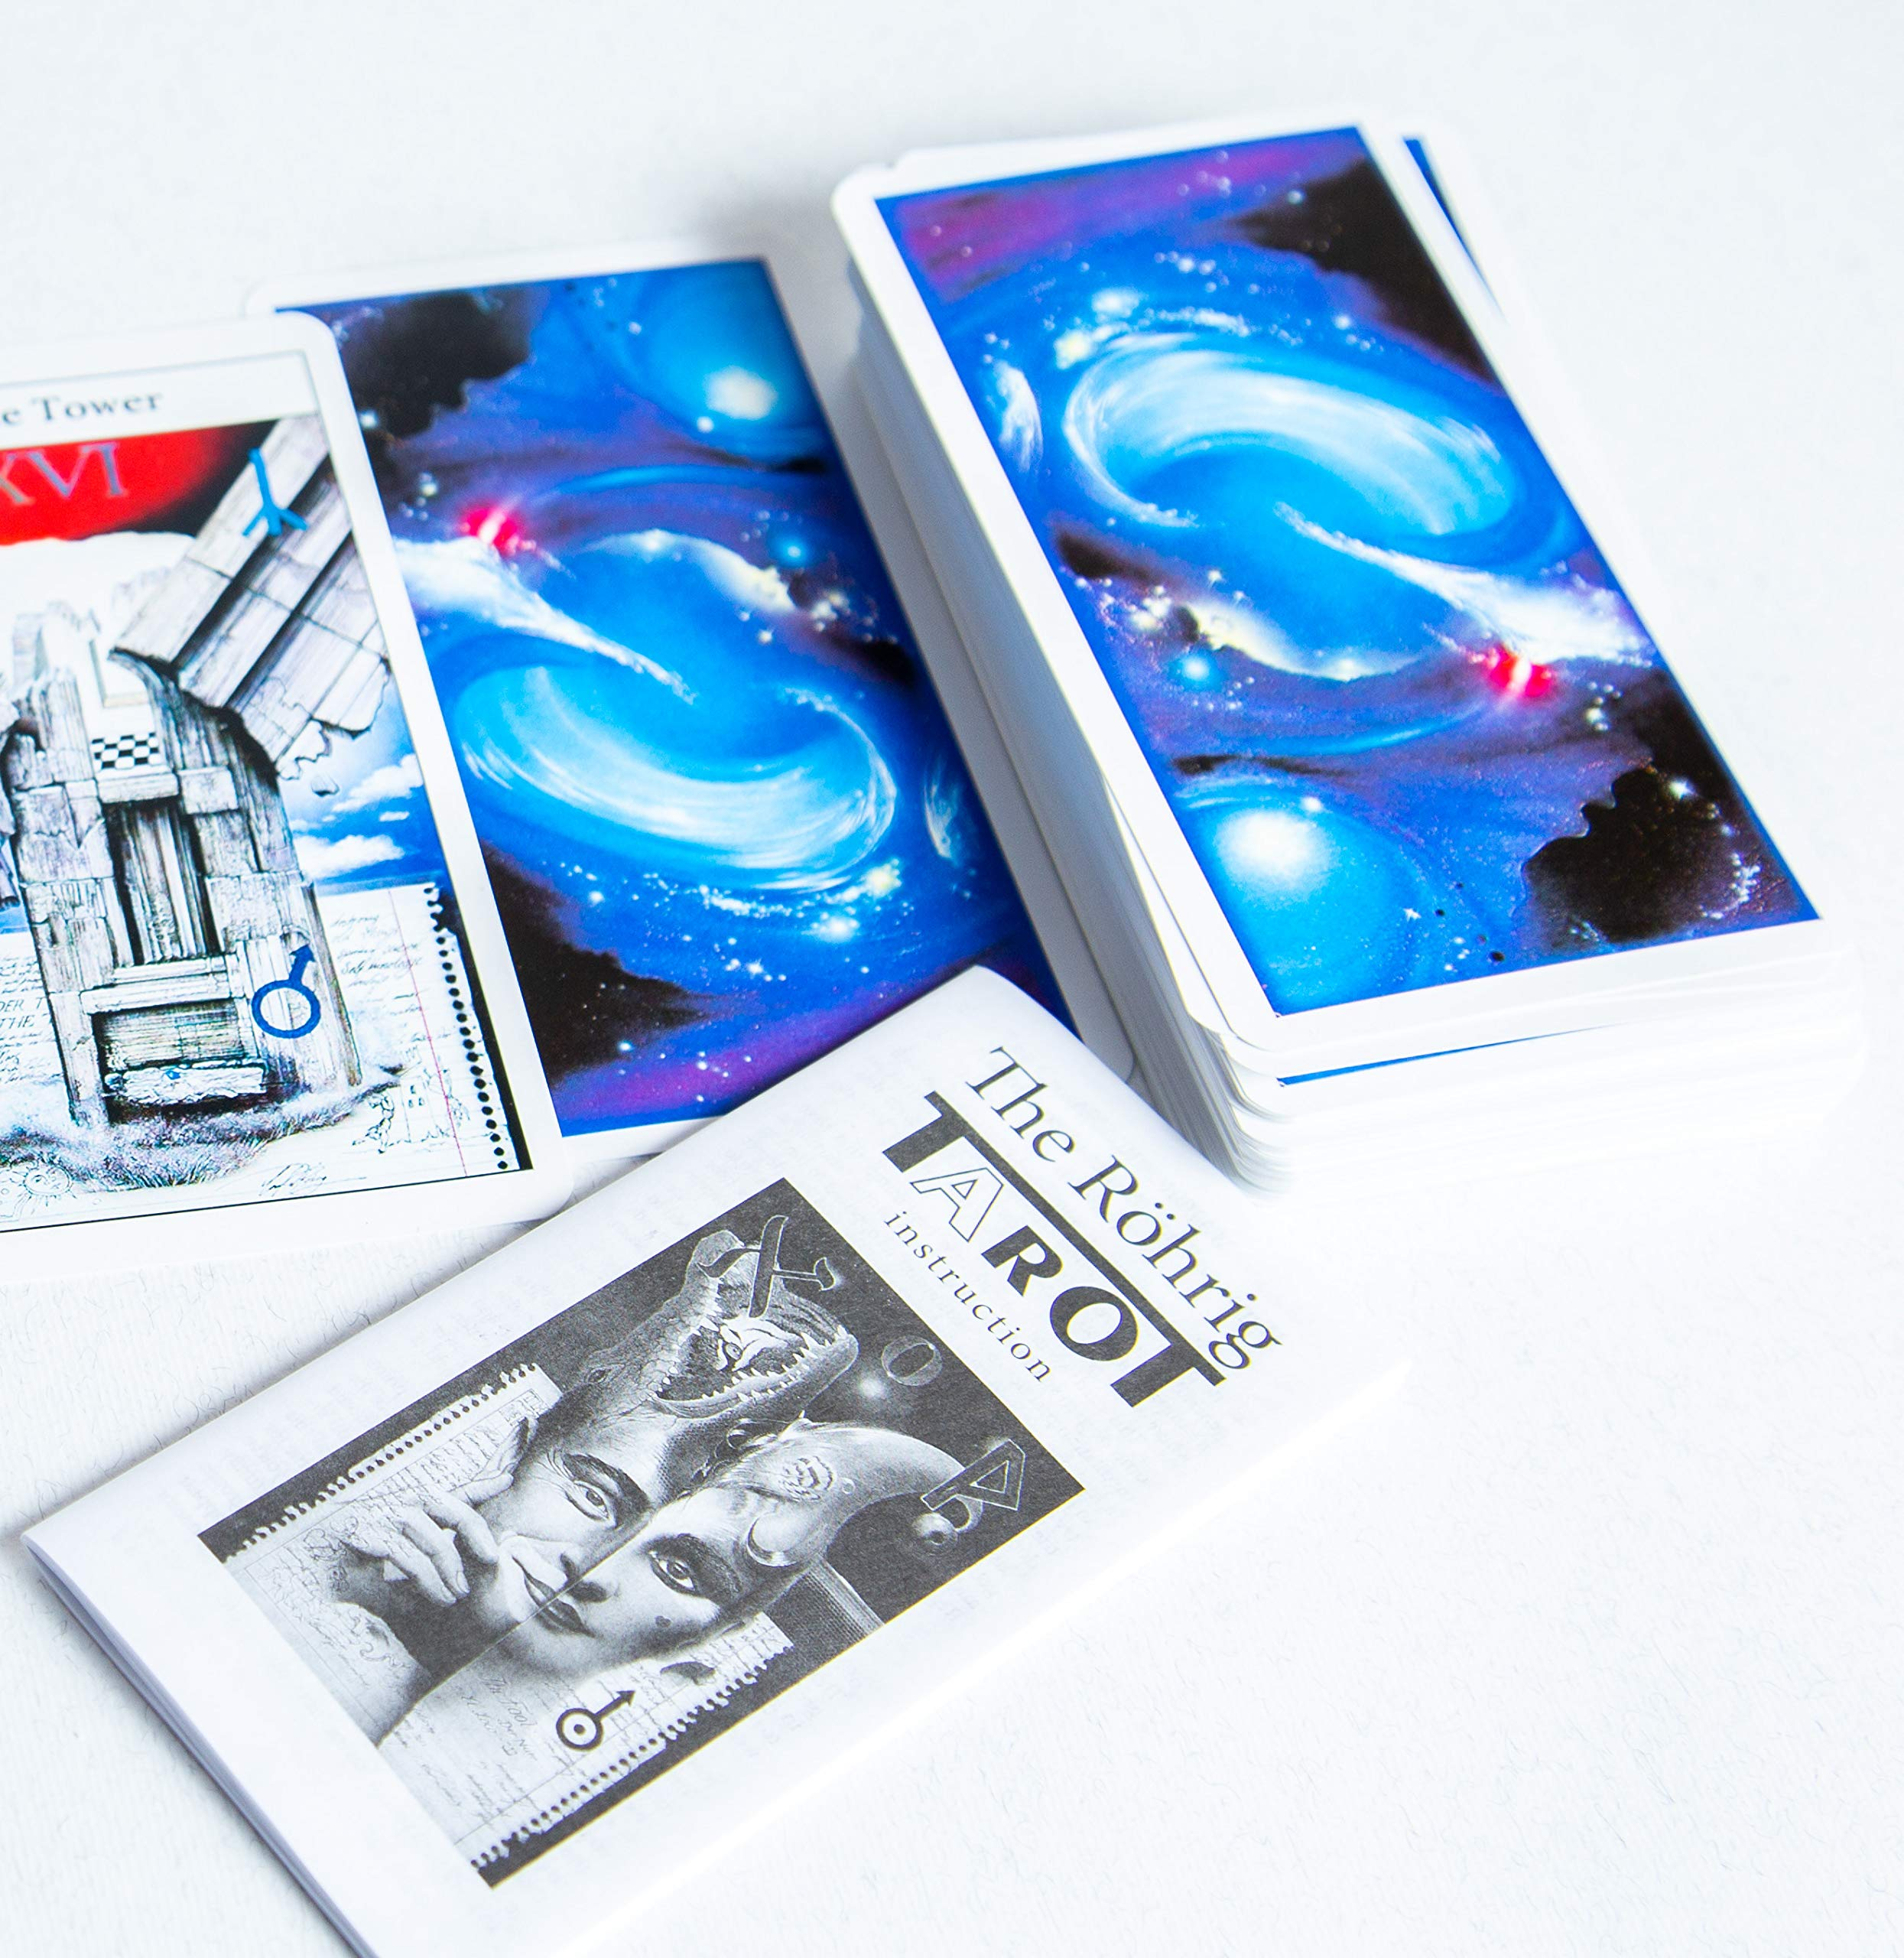 New 78 The Rohrig Tarot Tarot Cards Deck (Replica) Valentines Gift by Unknown (Image #6)